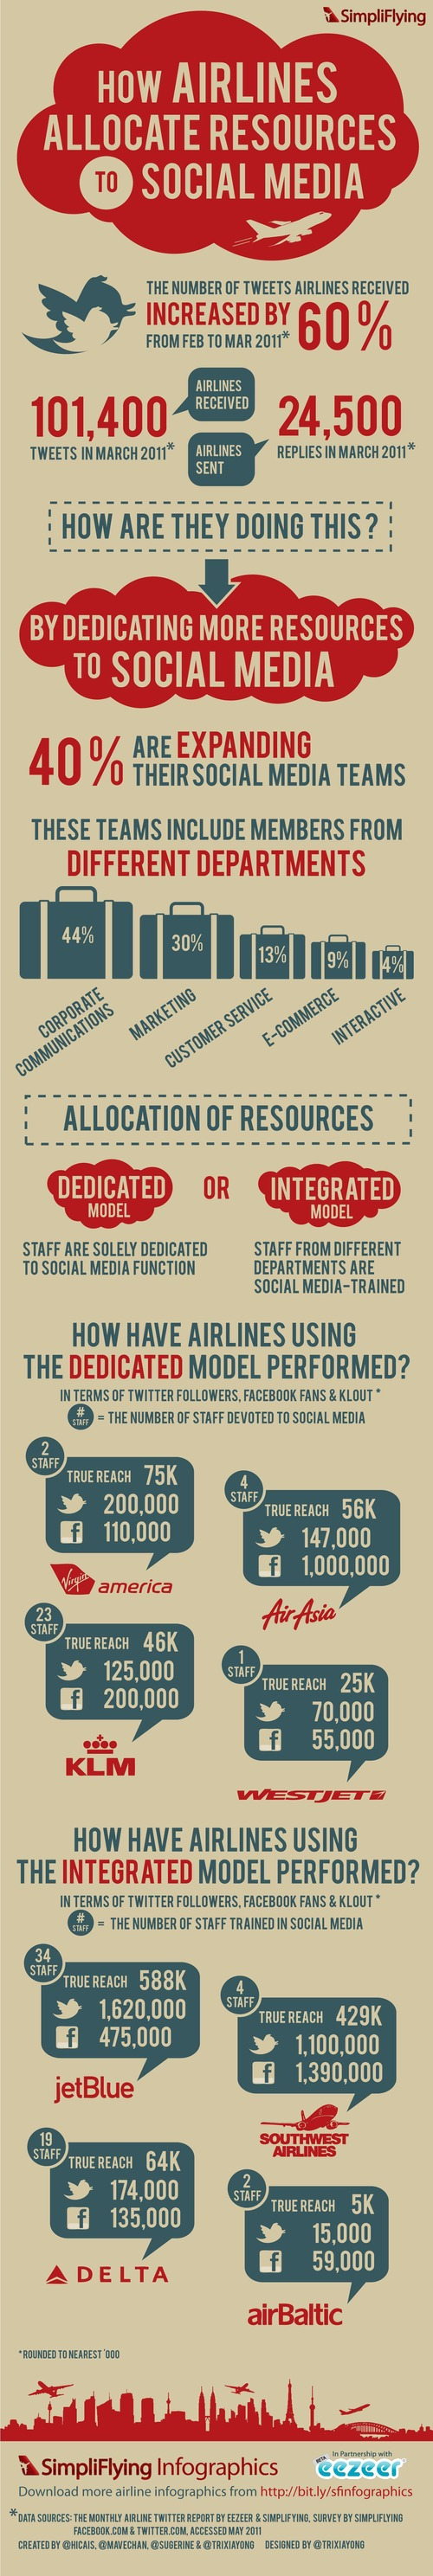 Simpliflying-infographic-v6